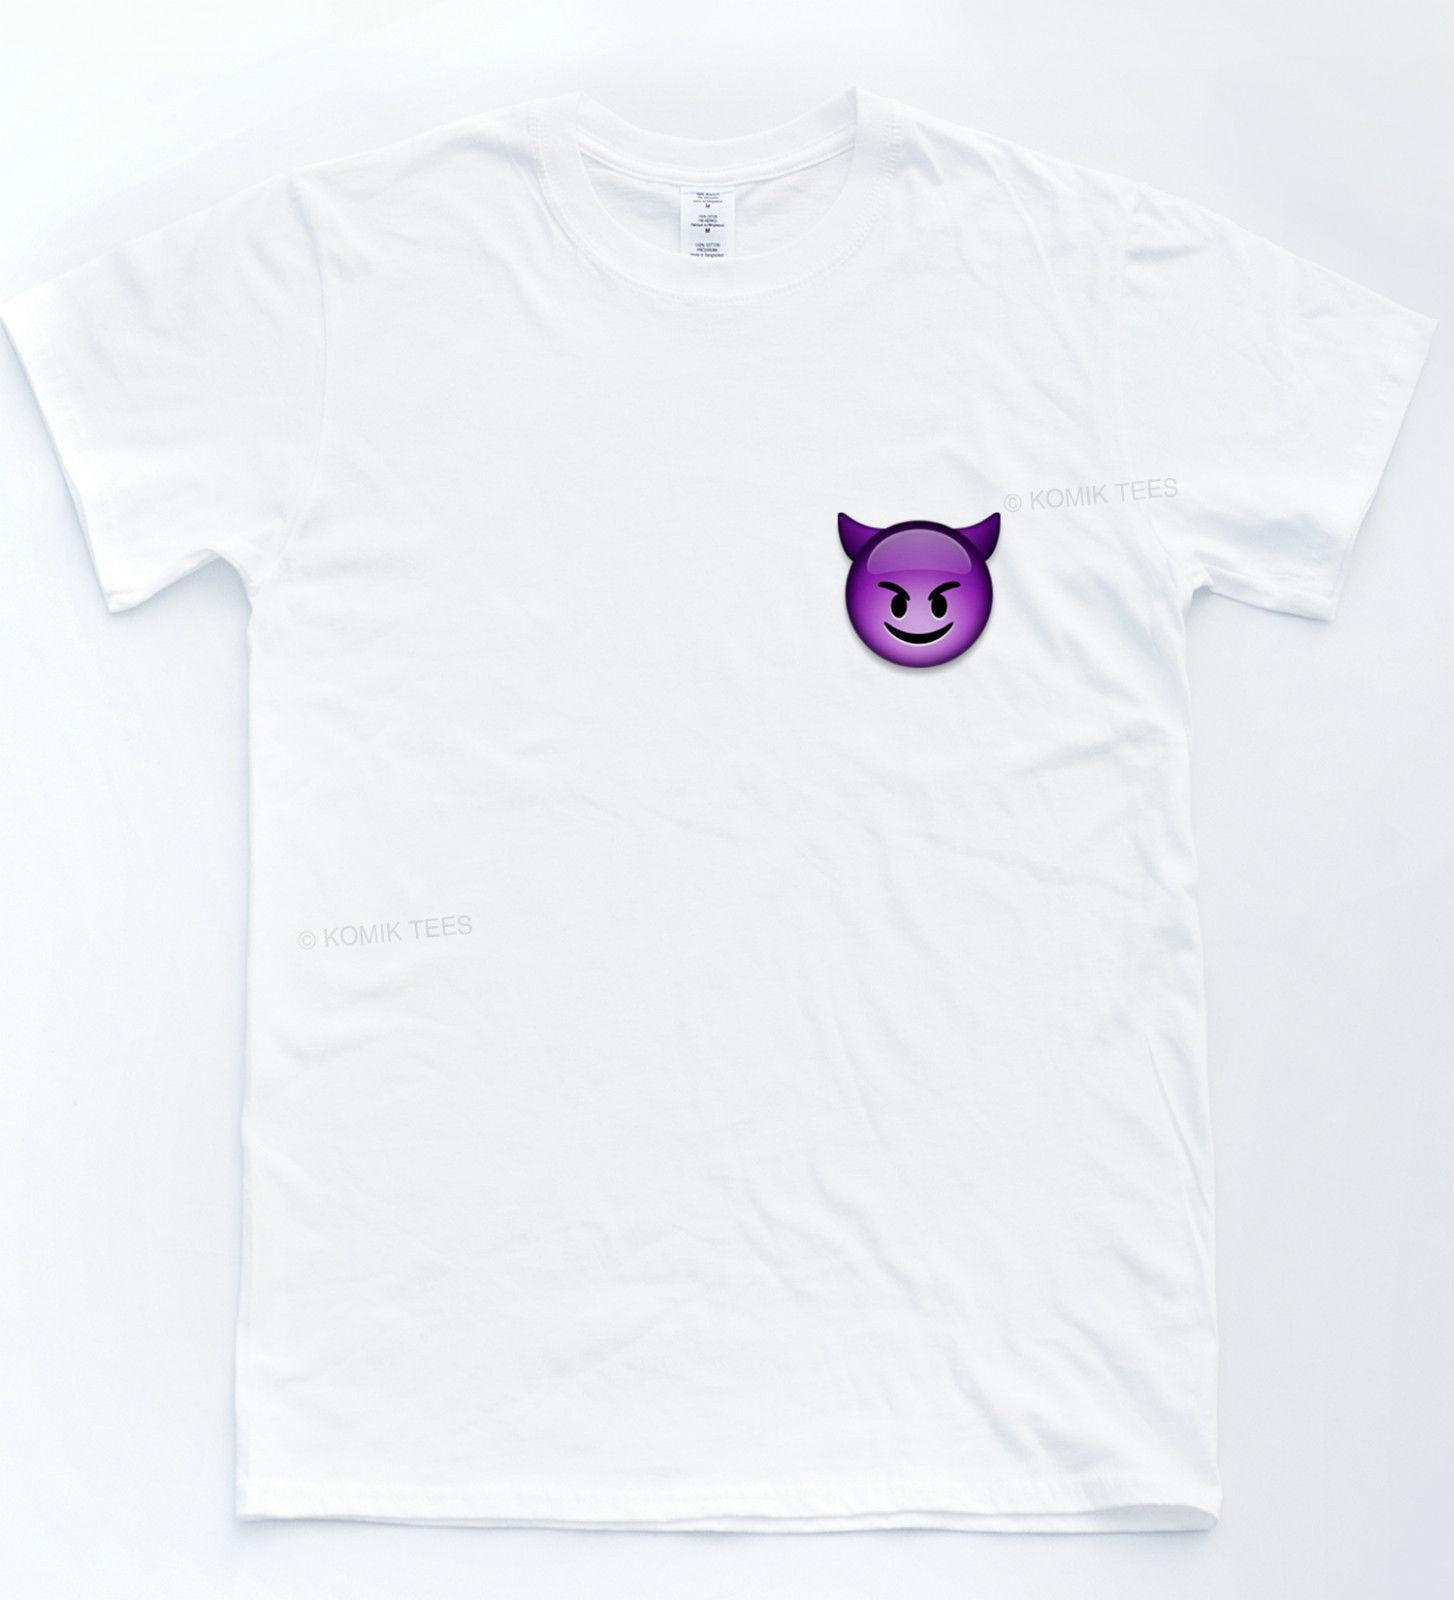 35d25133 Emoji Devil Cheeky T Shirt Horny DTF Meme Funny Indie Horns Tee Happy Face  Top Funny Unisex Casual Tshirt Printing On T Shirts Crazy T Shirts From ...